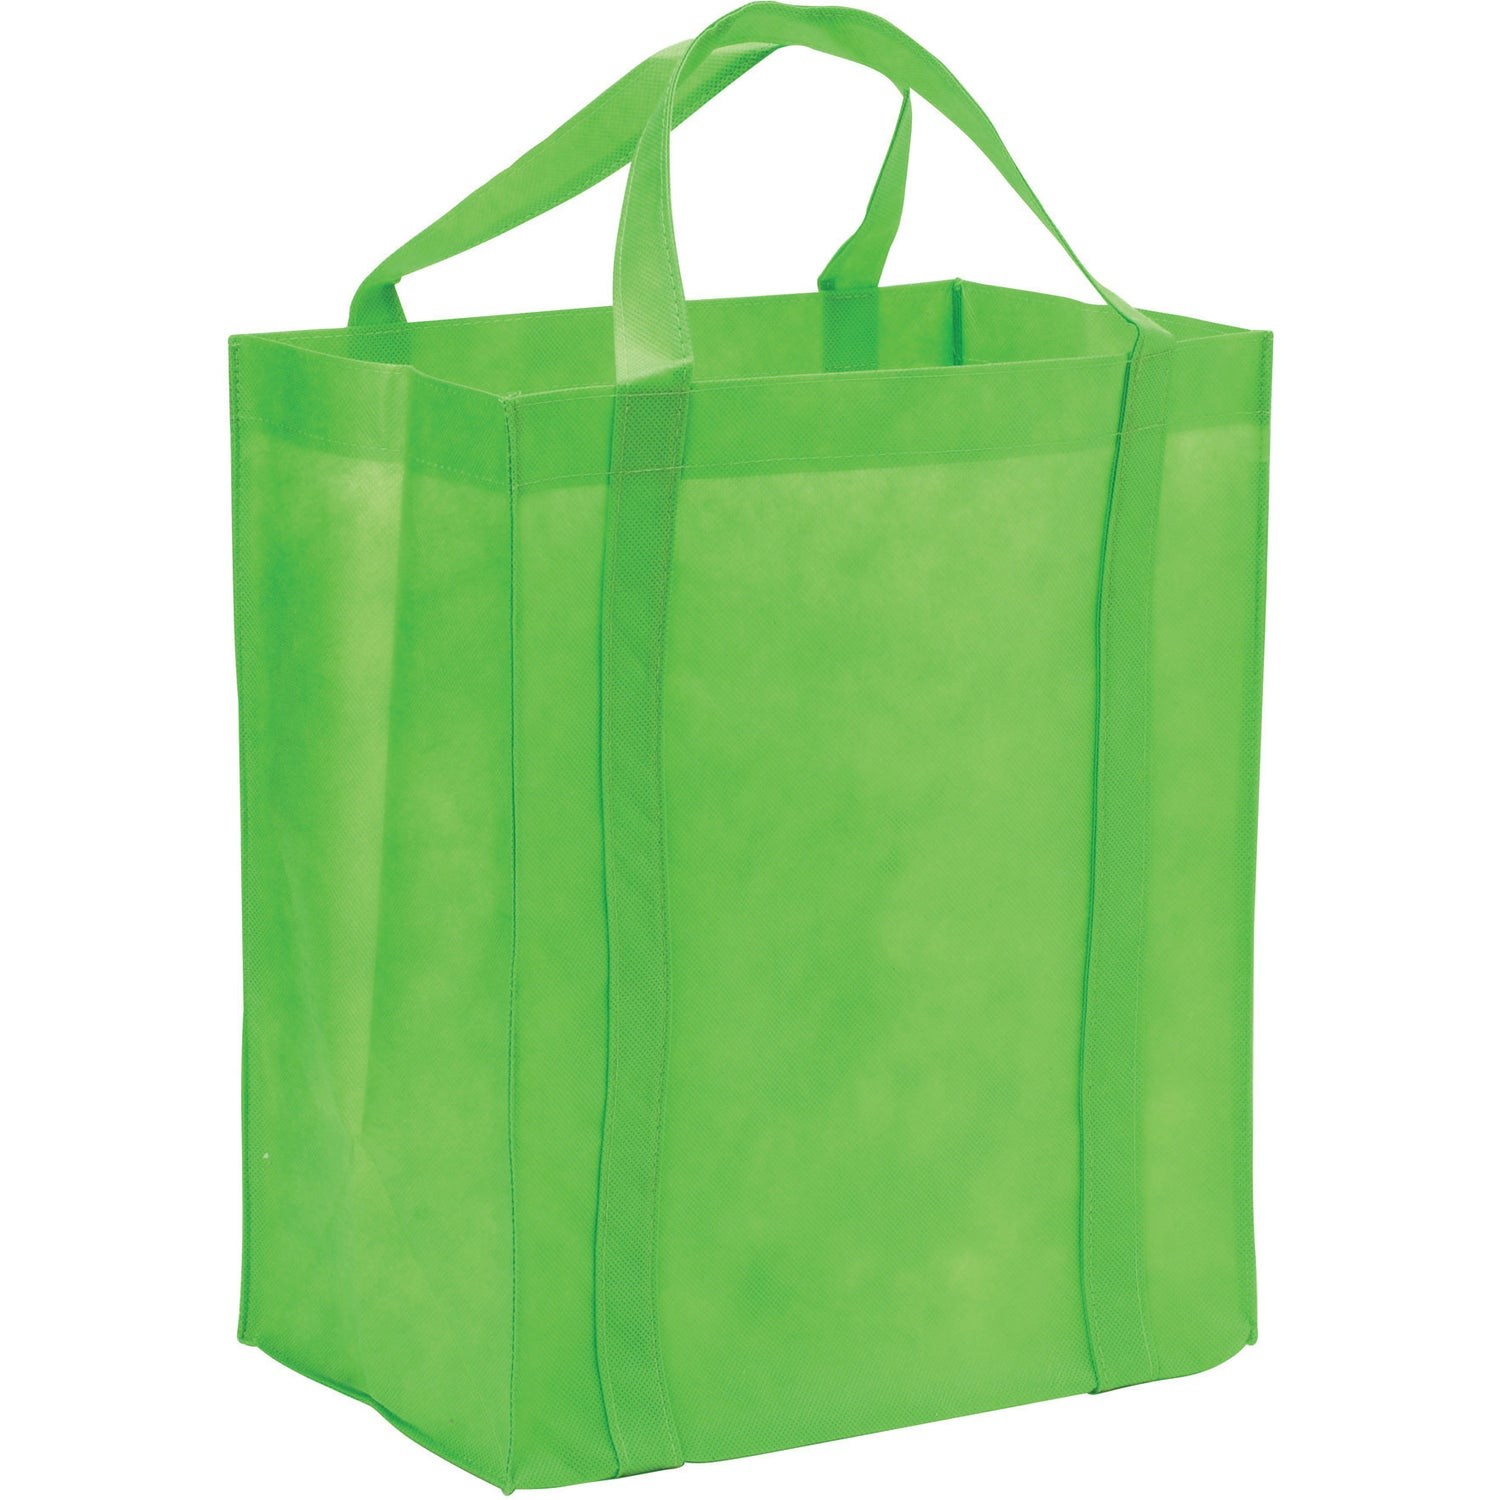 595fc82db CLICK HERE to Order Non-Woven Reusable Grocery Totes Printed with Your Logo  for  2.04 Ea.